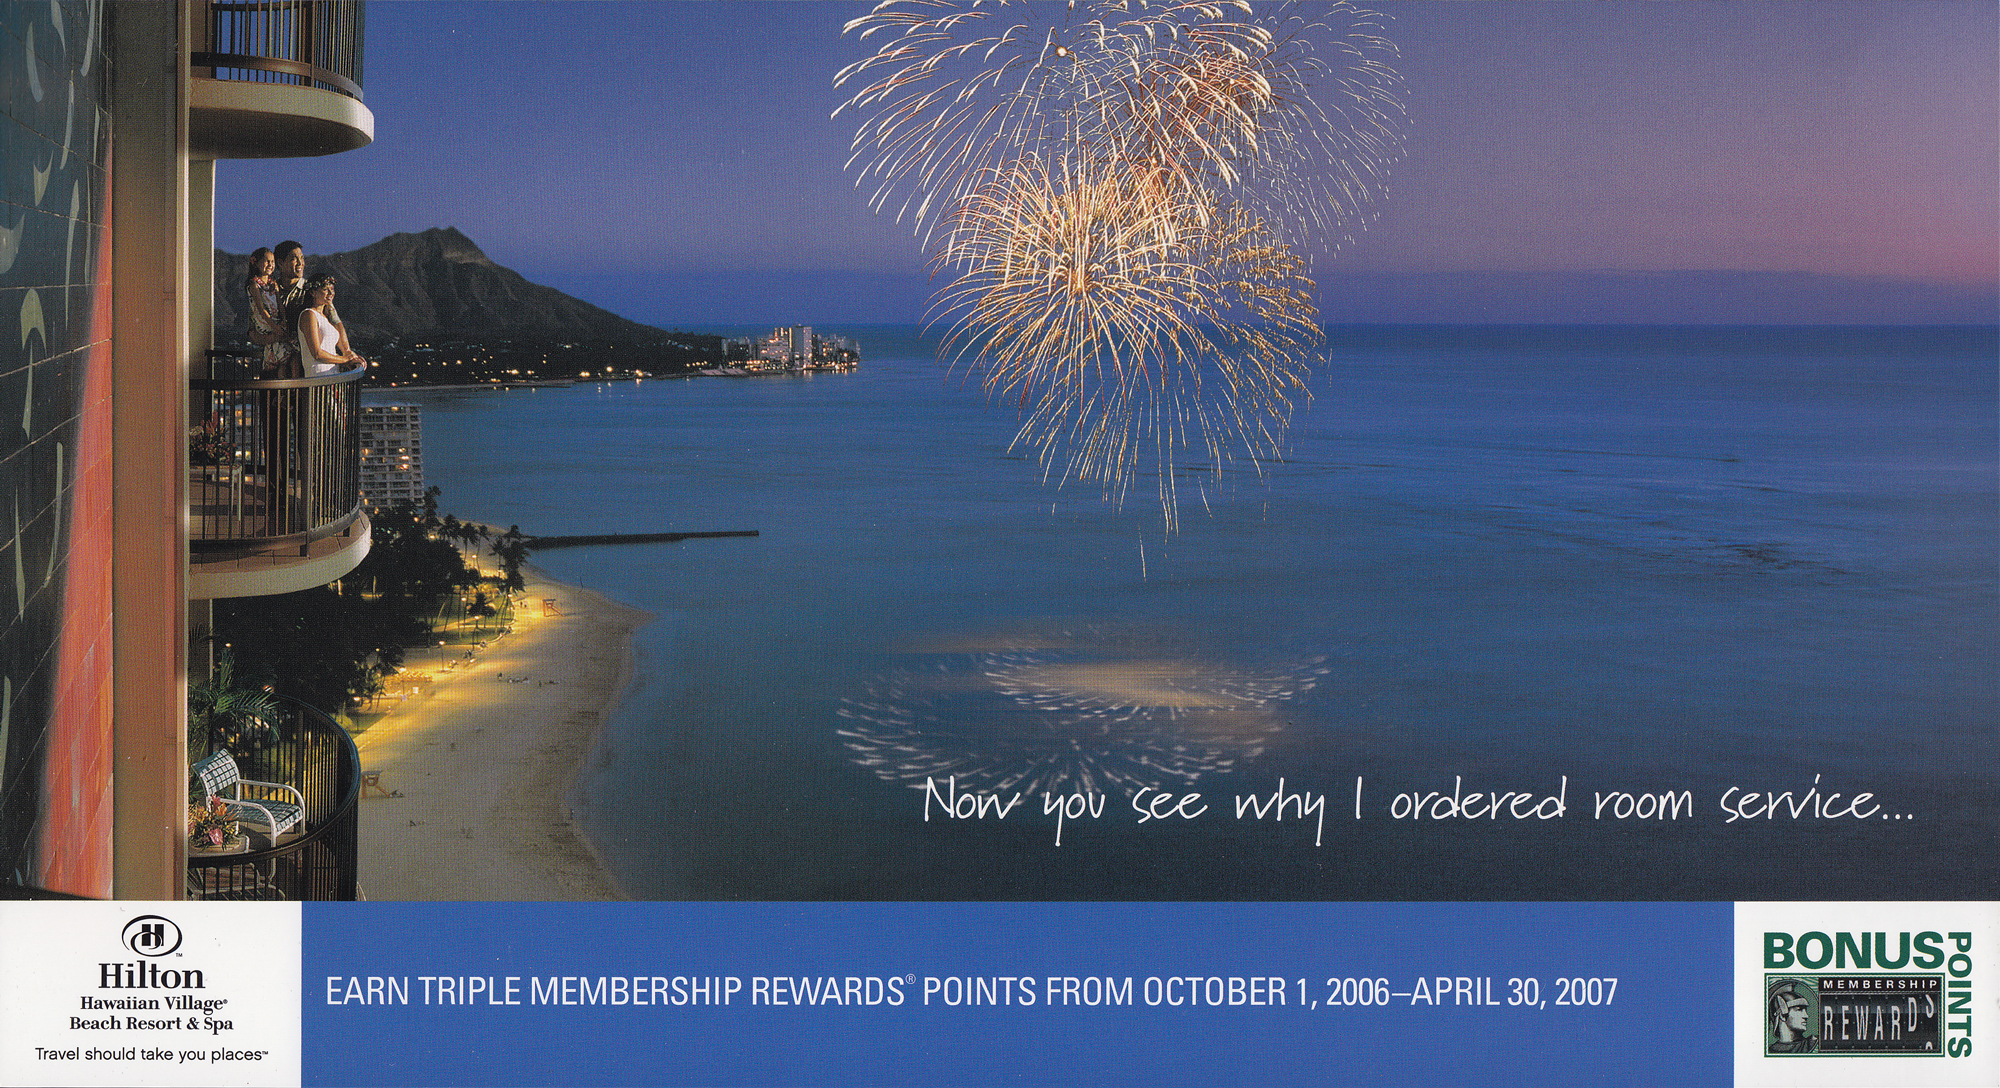 Hilton Hawaii / American Express promotion